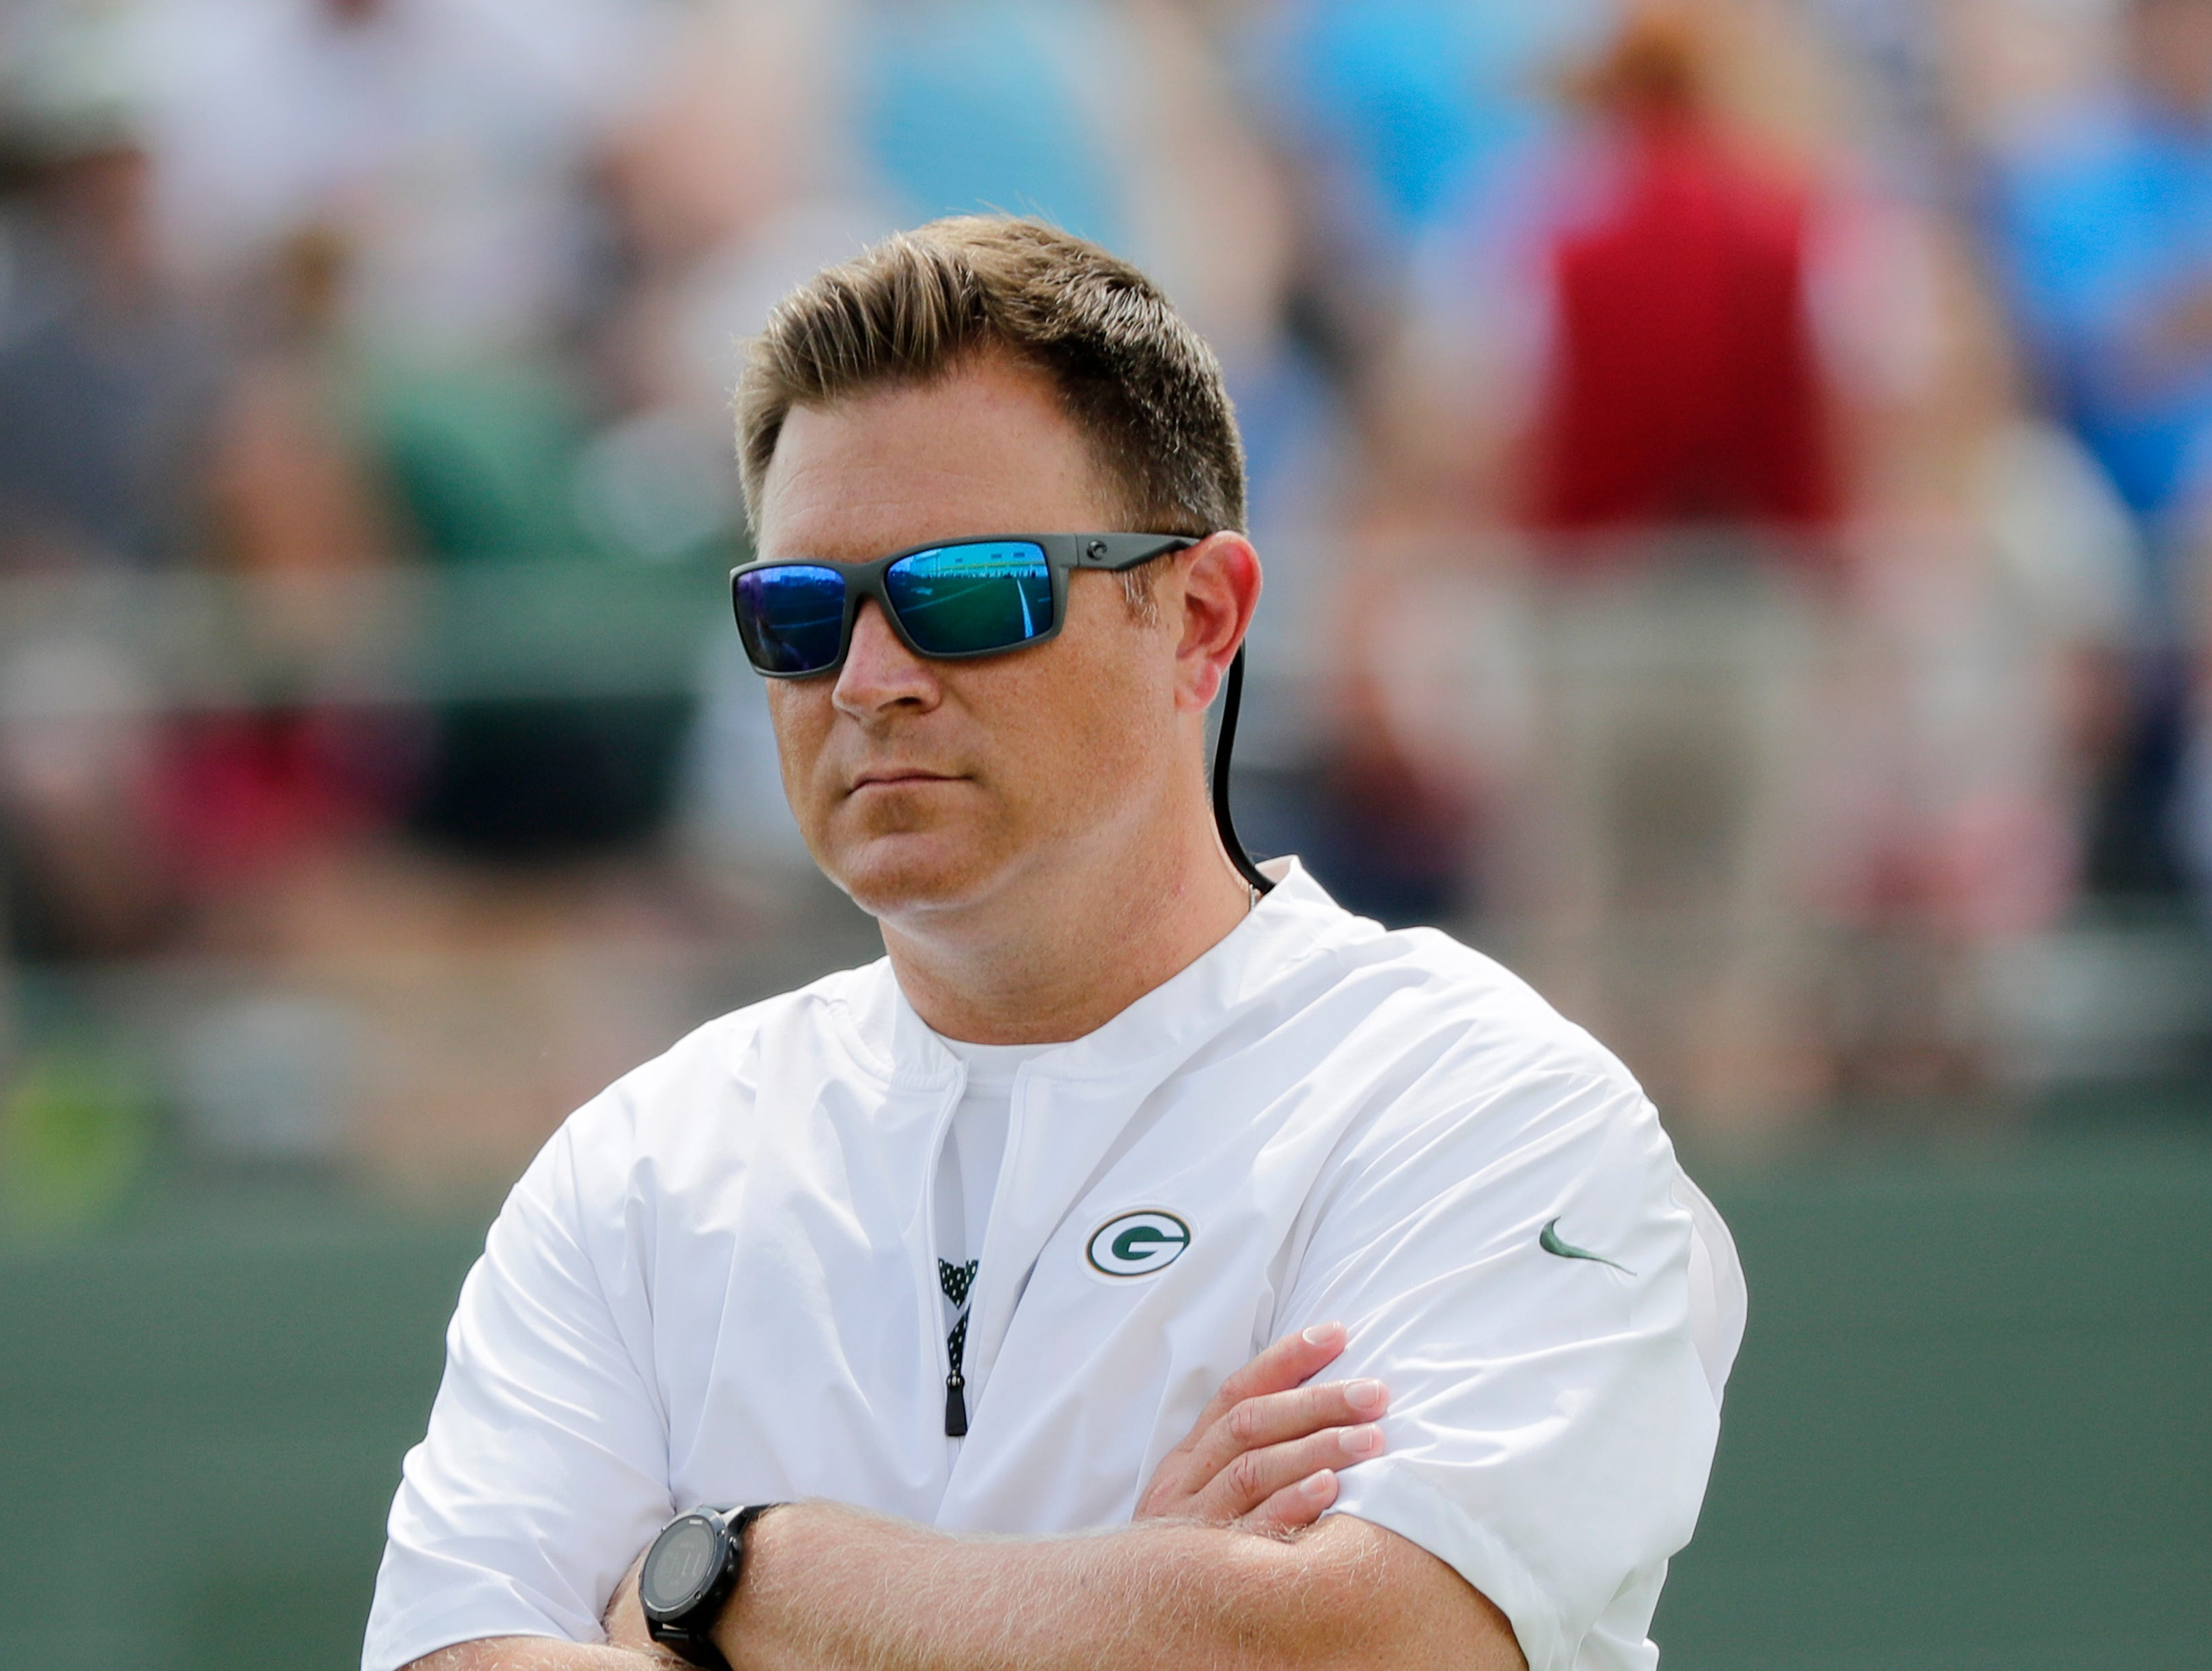 Green Bay Packers GM Brian Gutekunst watches during training camp practice at Ray Nitschke Field on Friday, August 3, 2018 in Ashwaubenon, Wis. 